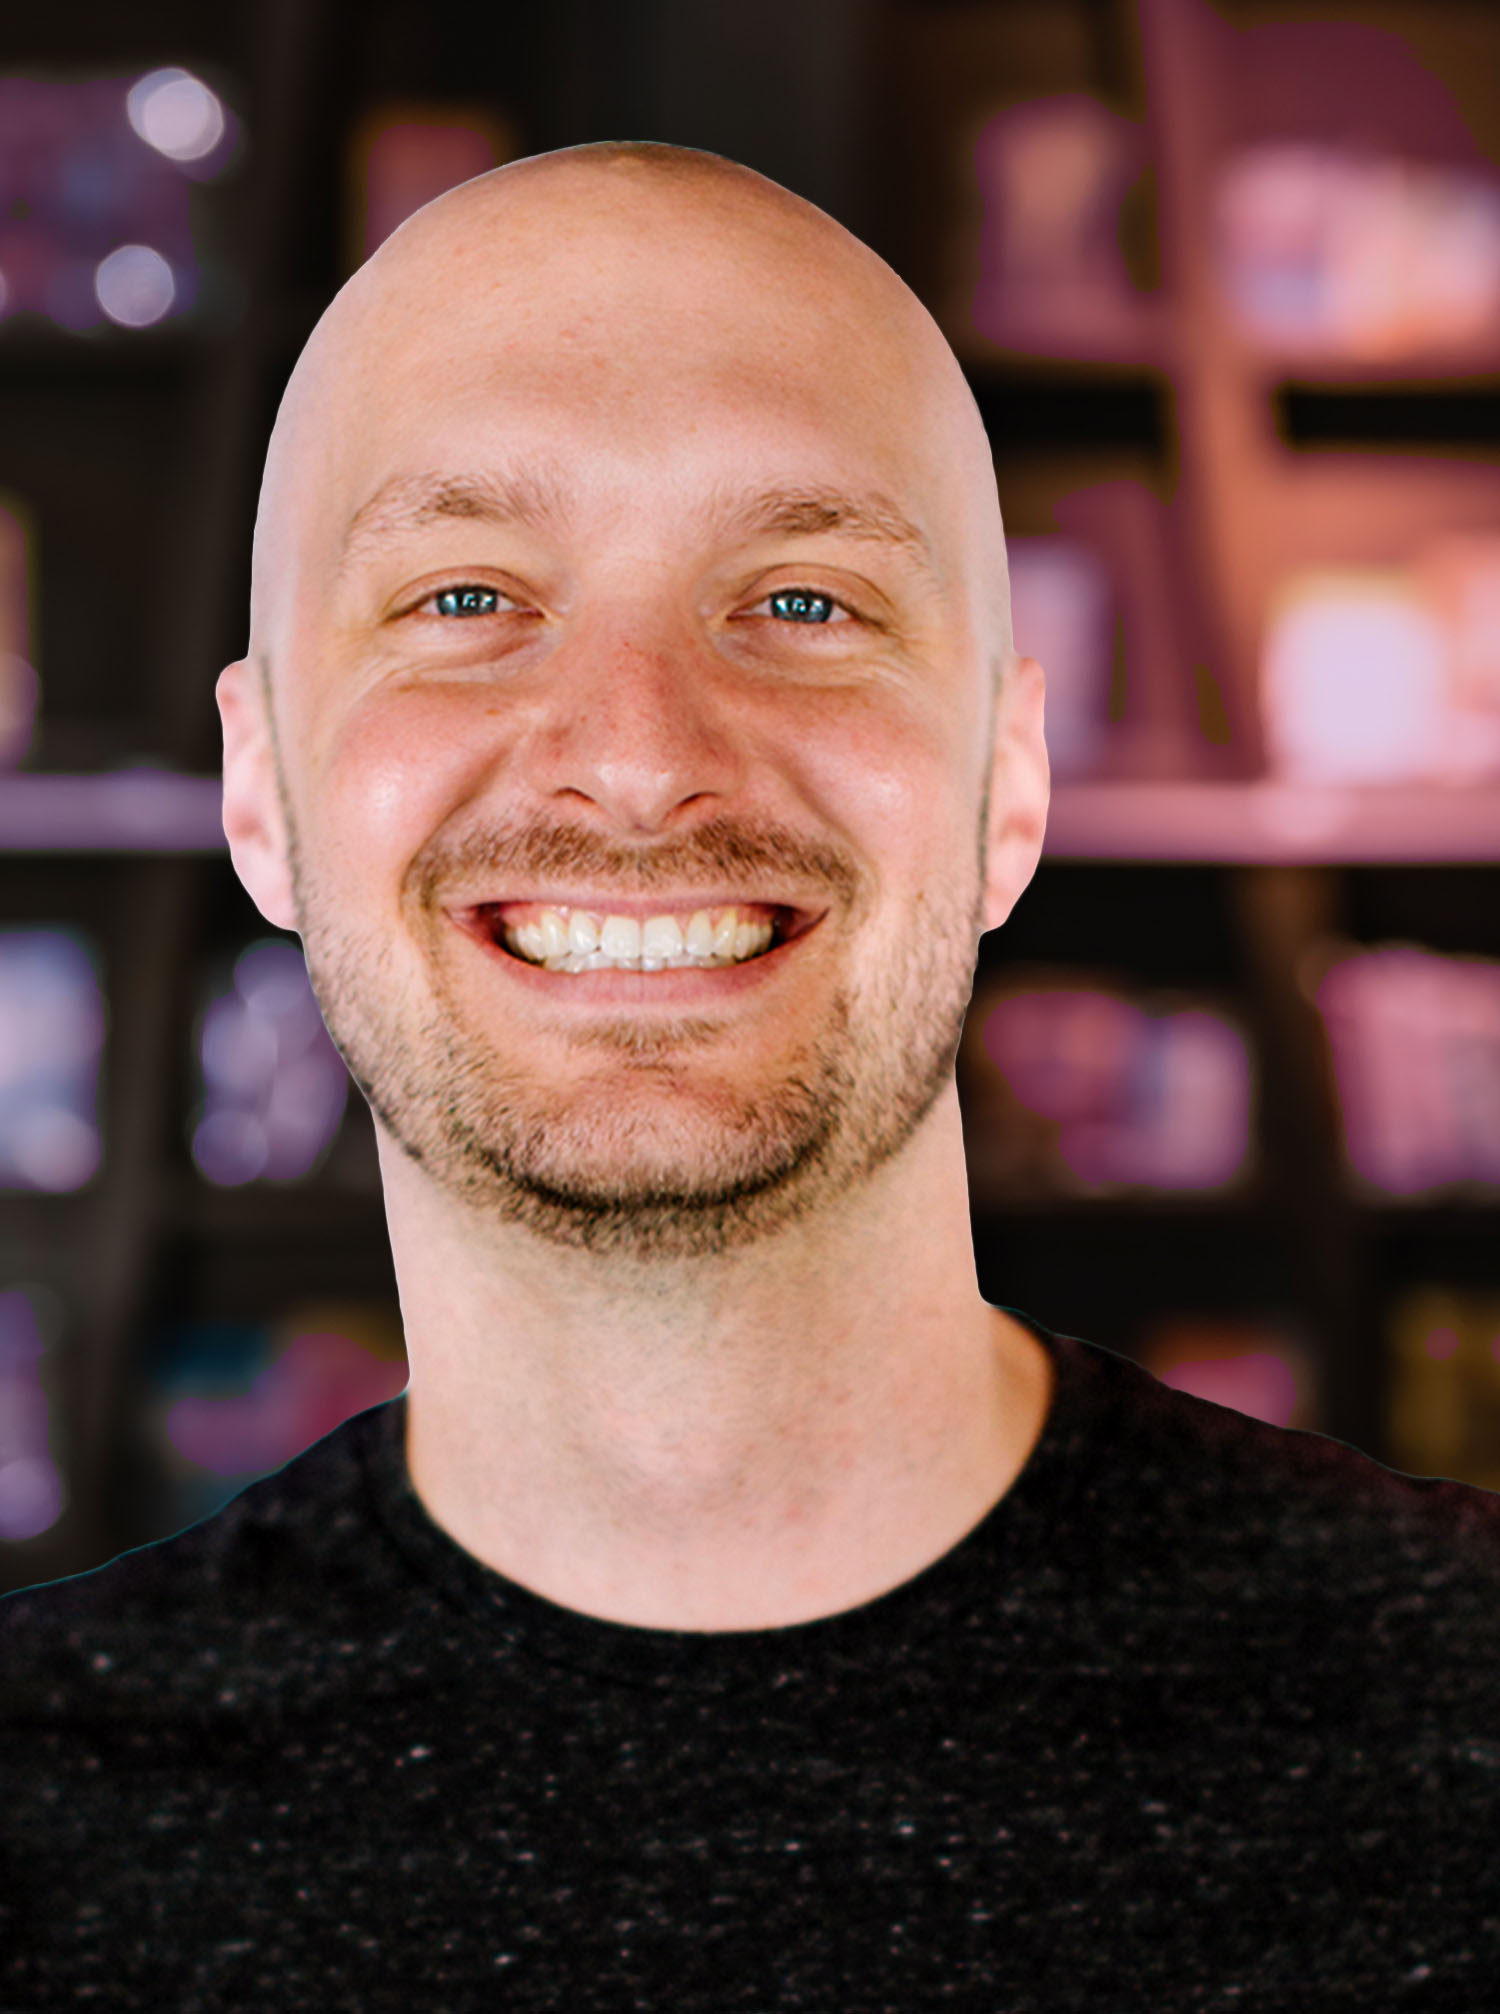 Ep04: Kyle Lacy, CMO at Lessonly